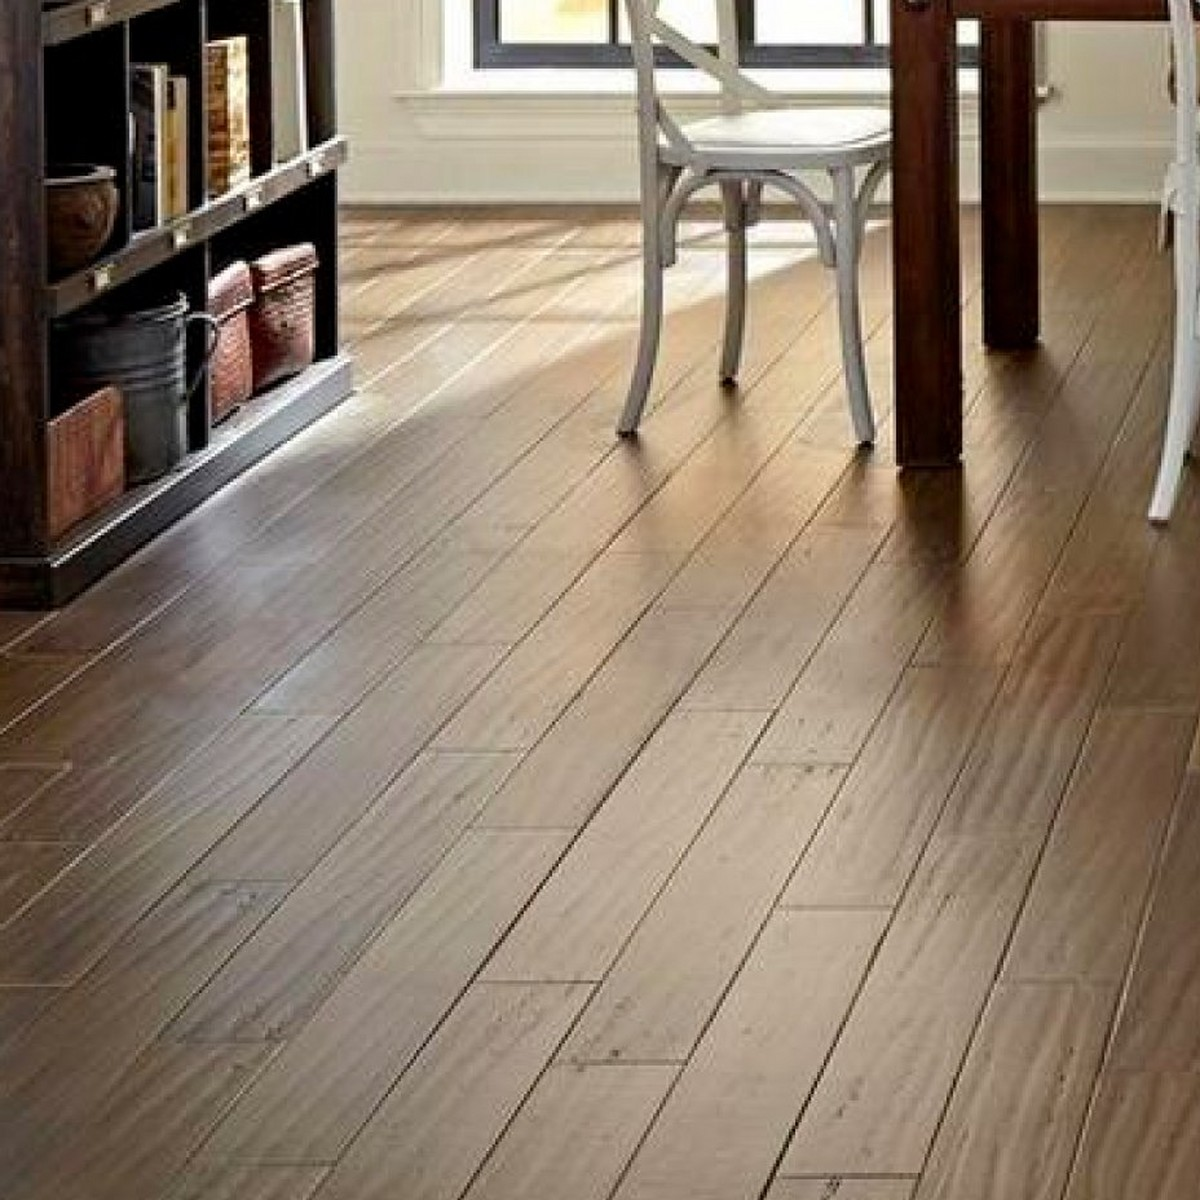 wood flooring floor decor. Black Bedroom Furniture Sets. Home Design Ideas